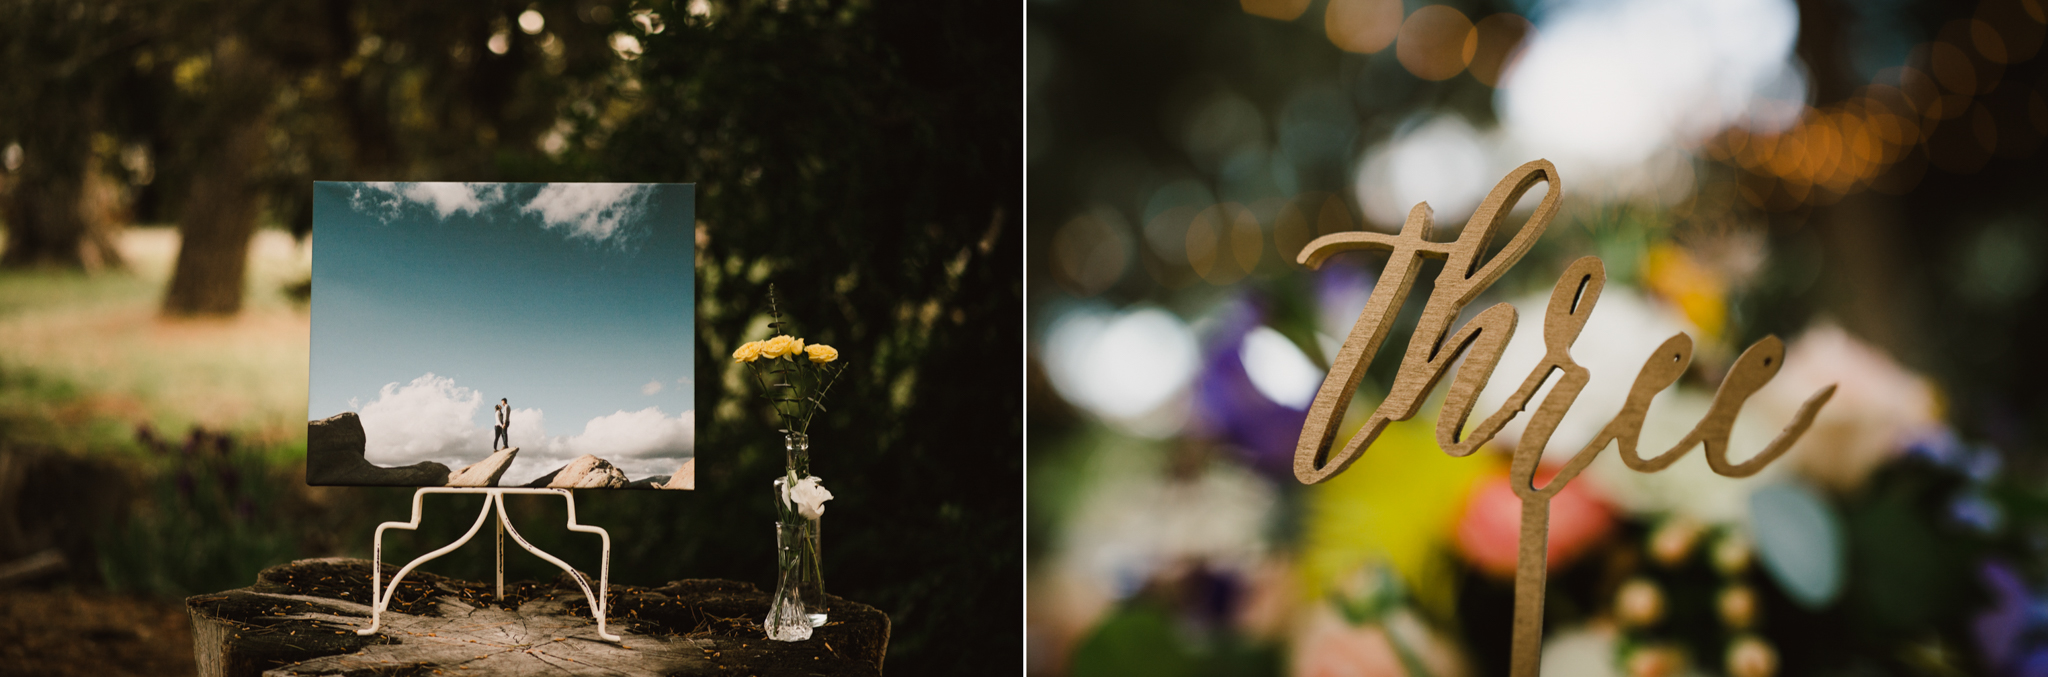 ©Isaiah-&-Taylor-Photography---Highland-Springs-Resort-Wedding,-Cherry-Valley-120.jpg